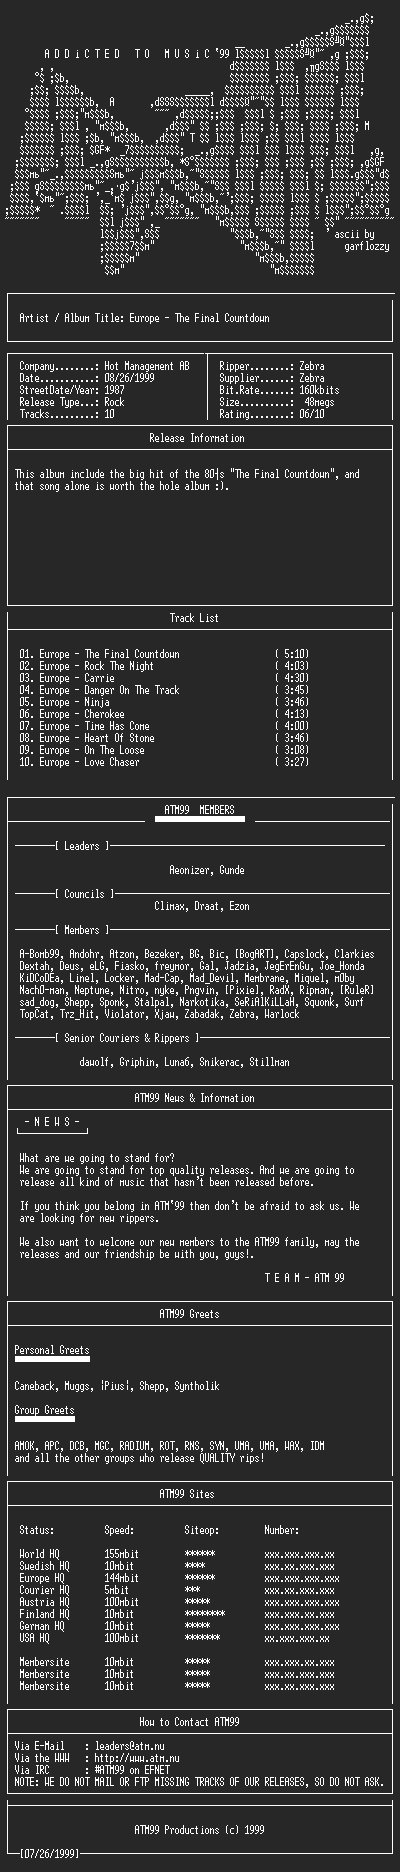 NFO file for Europe_-_The_Final_Countdown_-_(1987)-ATM99